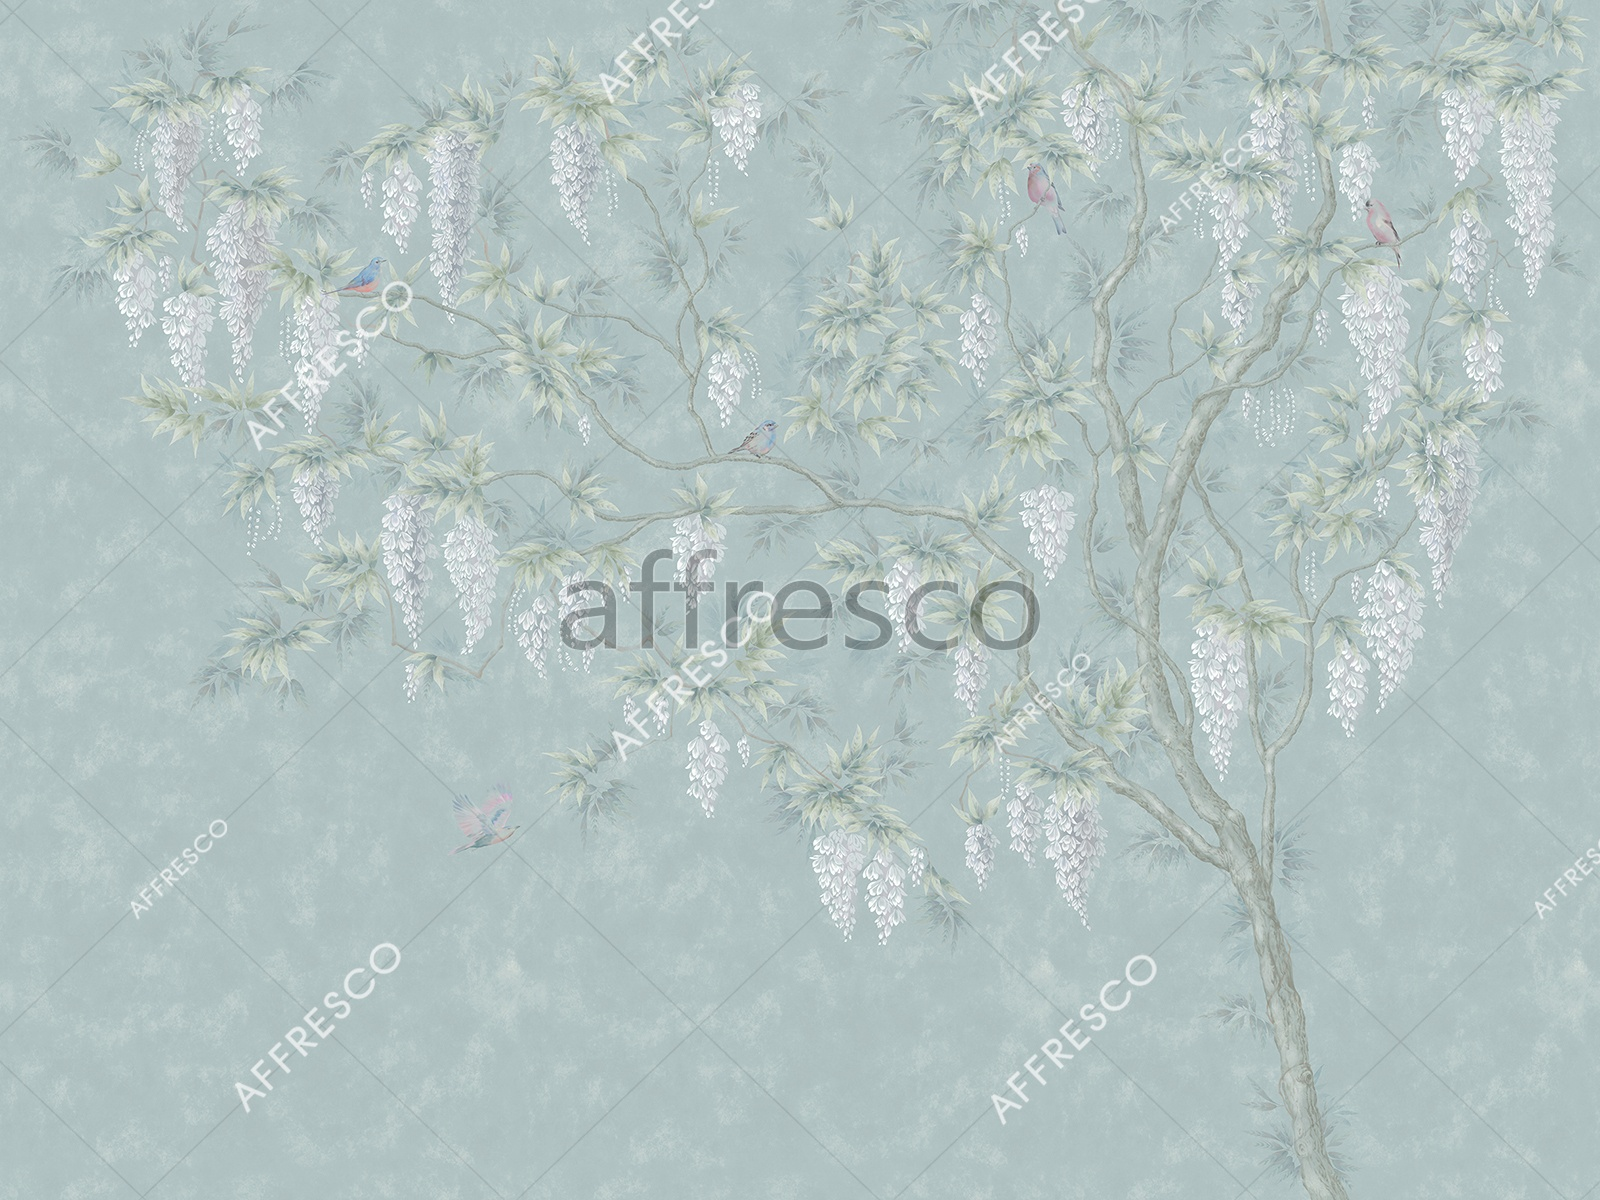 AF515-COL3 | Atmosphere | Affresco Factory